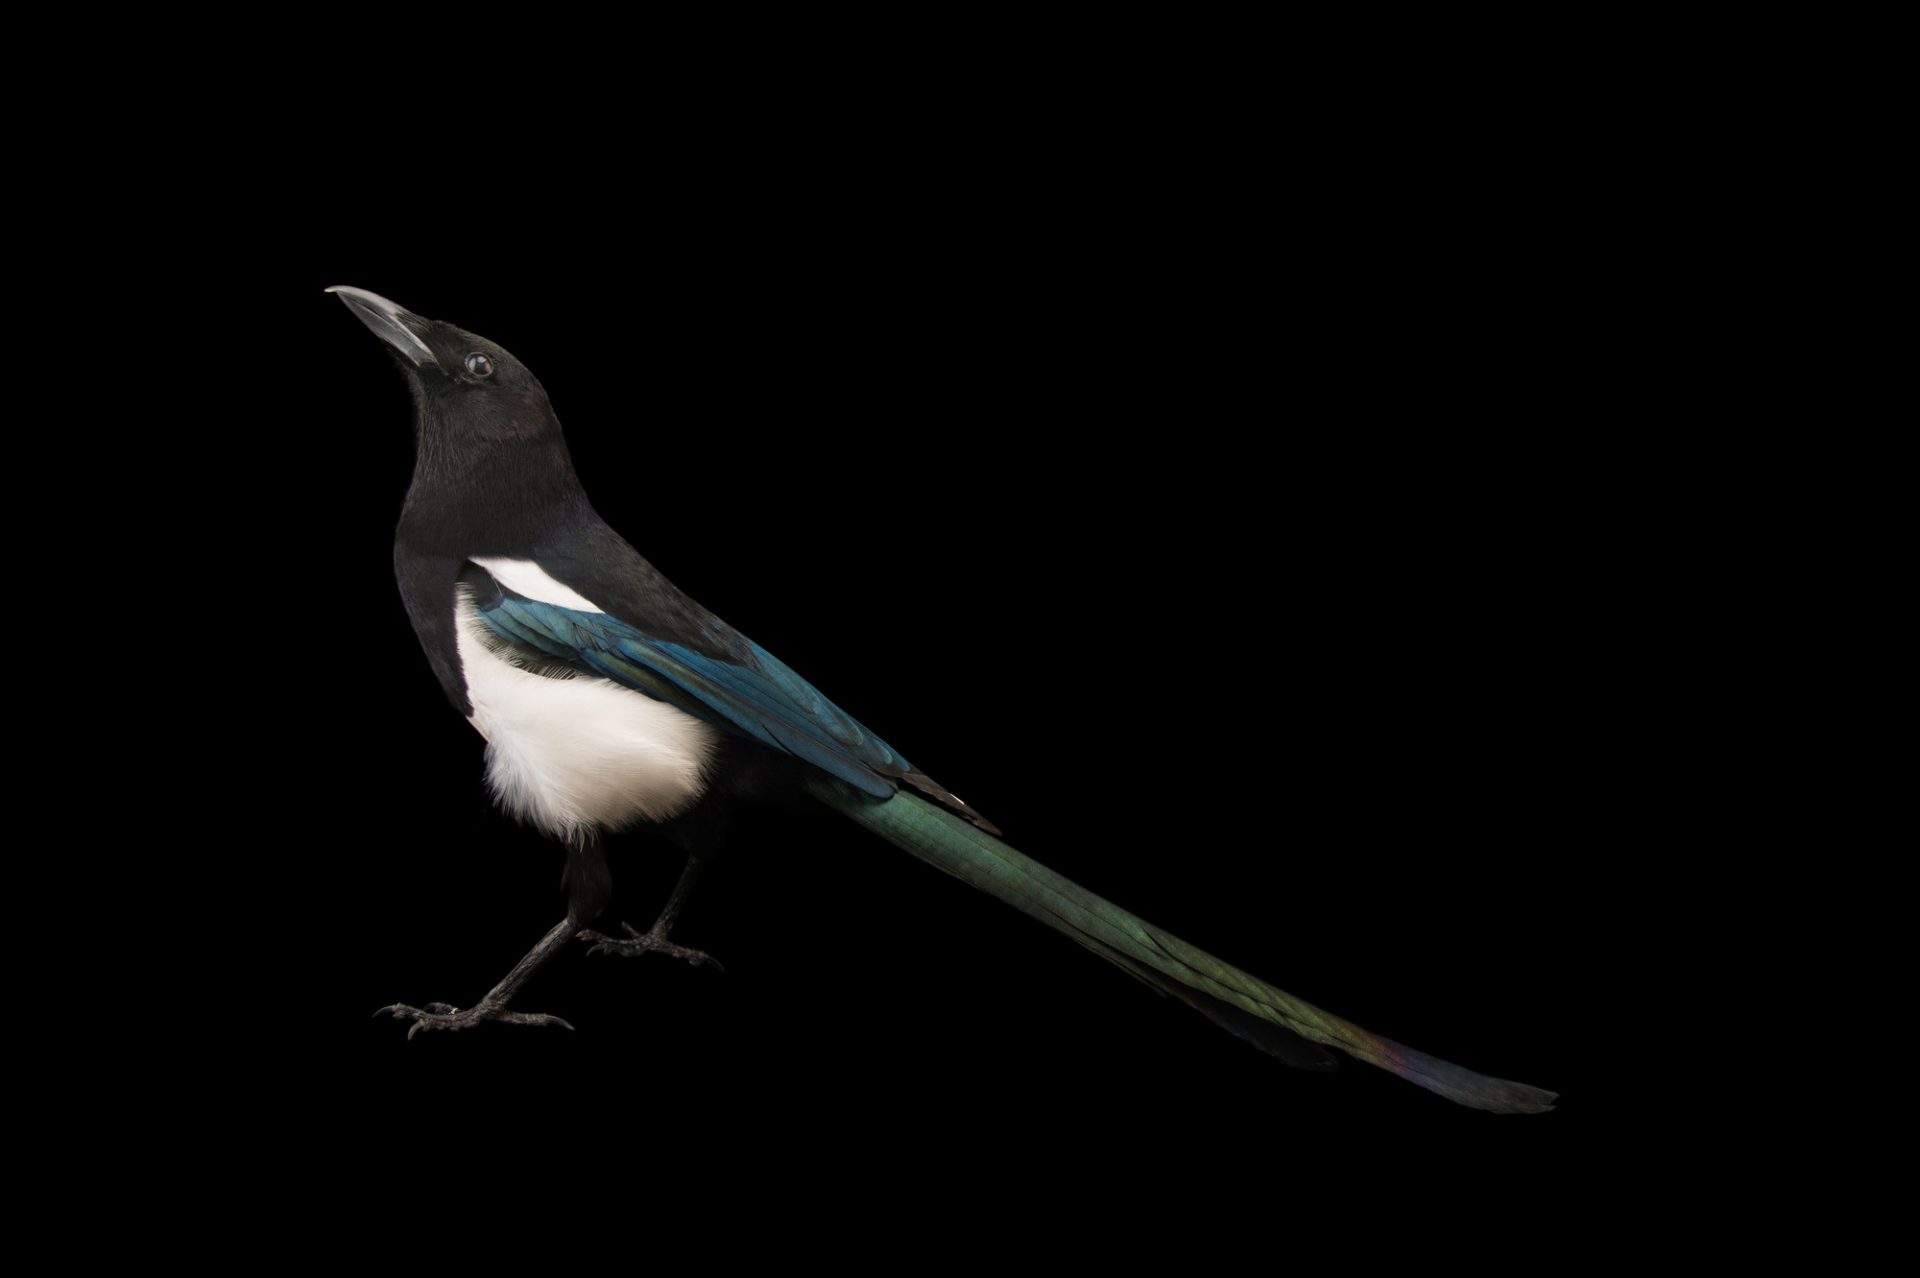 Photo: Black-billed magpie (Pica hudsonia) at Tracy Aviary.